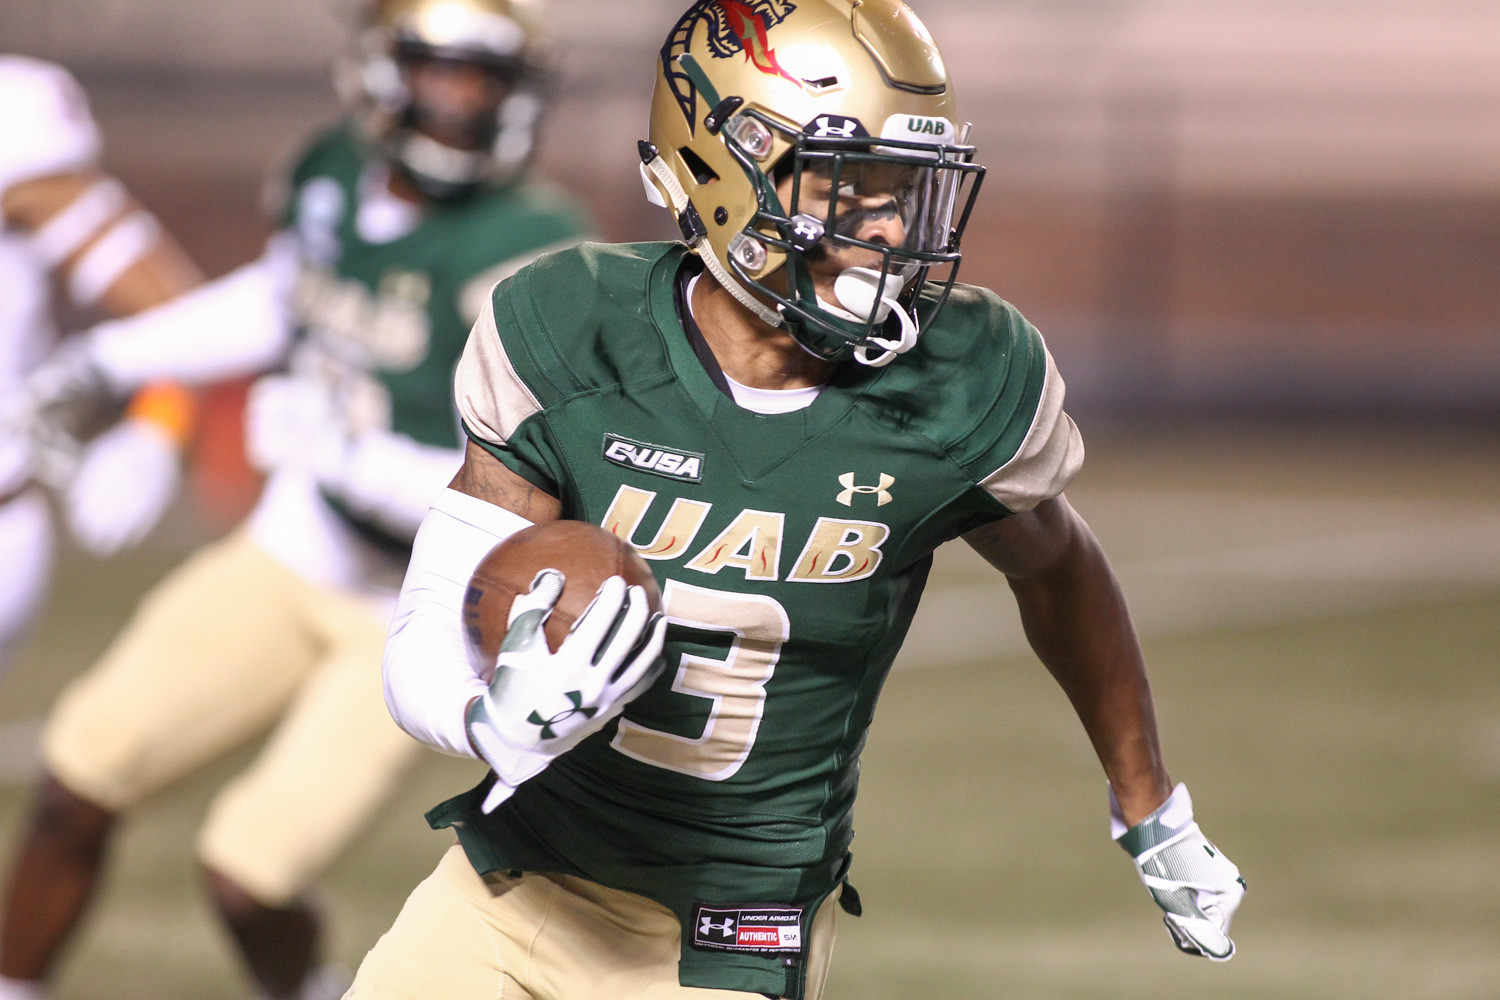 UAB wide receiver Andre Wilson carries the ball during the opening kickoff against UTSA at Legion Field in Birmingham, Ala., Saturday, Nov. 3, 2018.